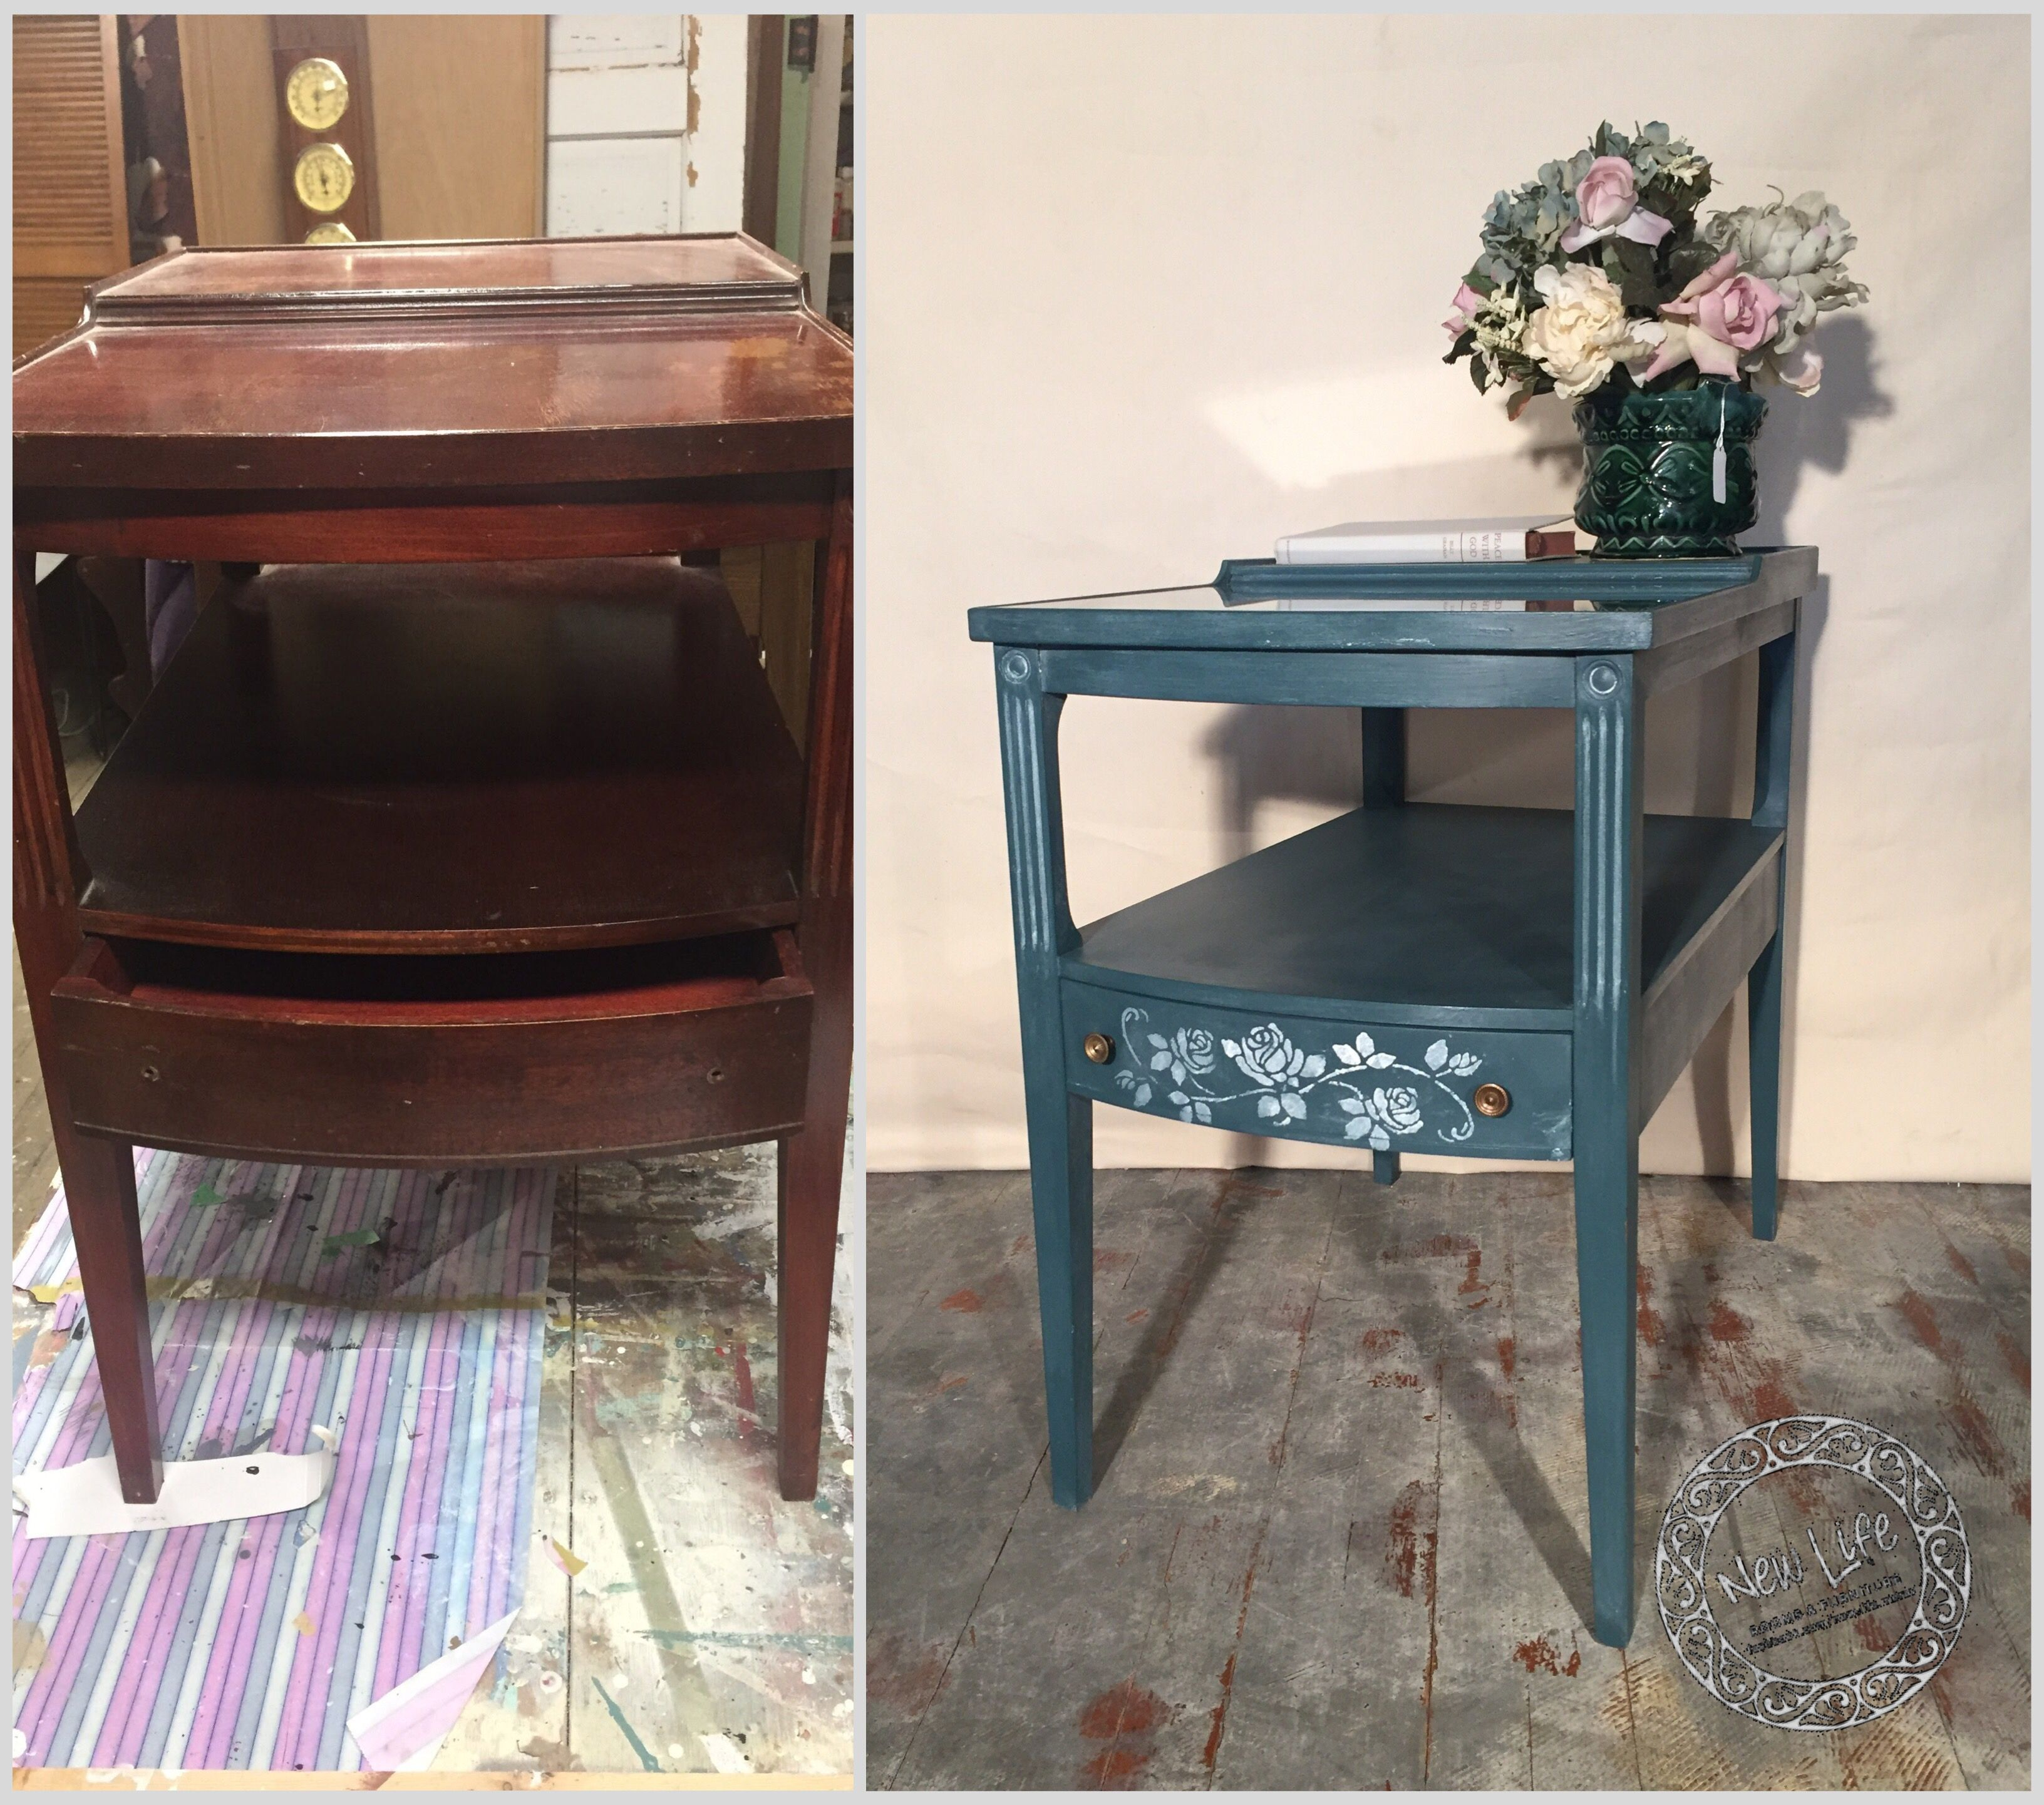 Side table painted chalk paint smoky blue and white wax https://www.facebook.com/new.life.merav/posts/1284412351607639:0